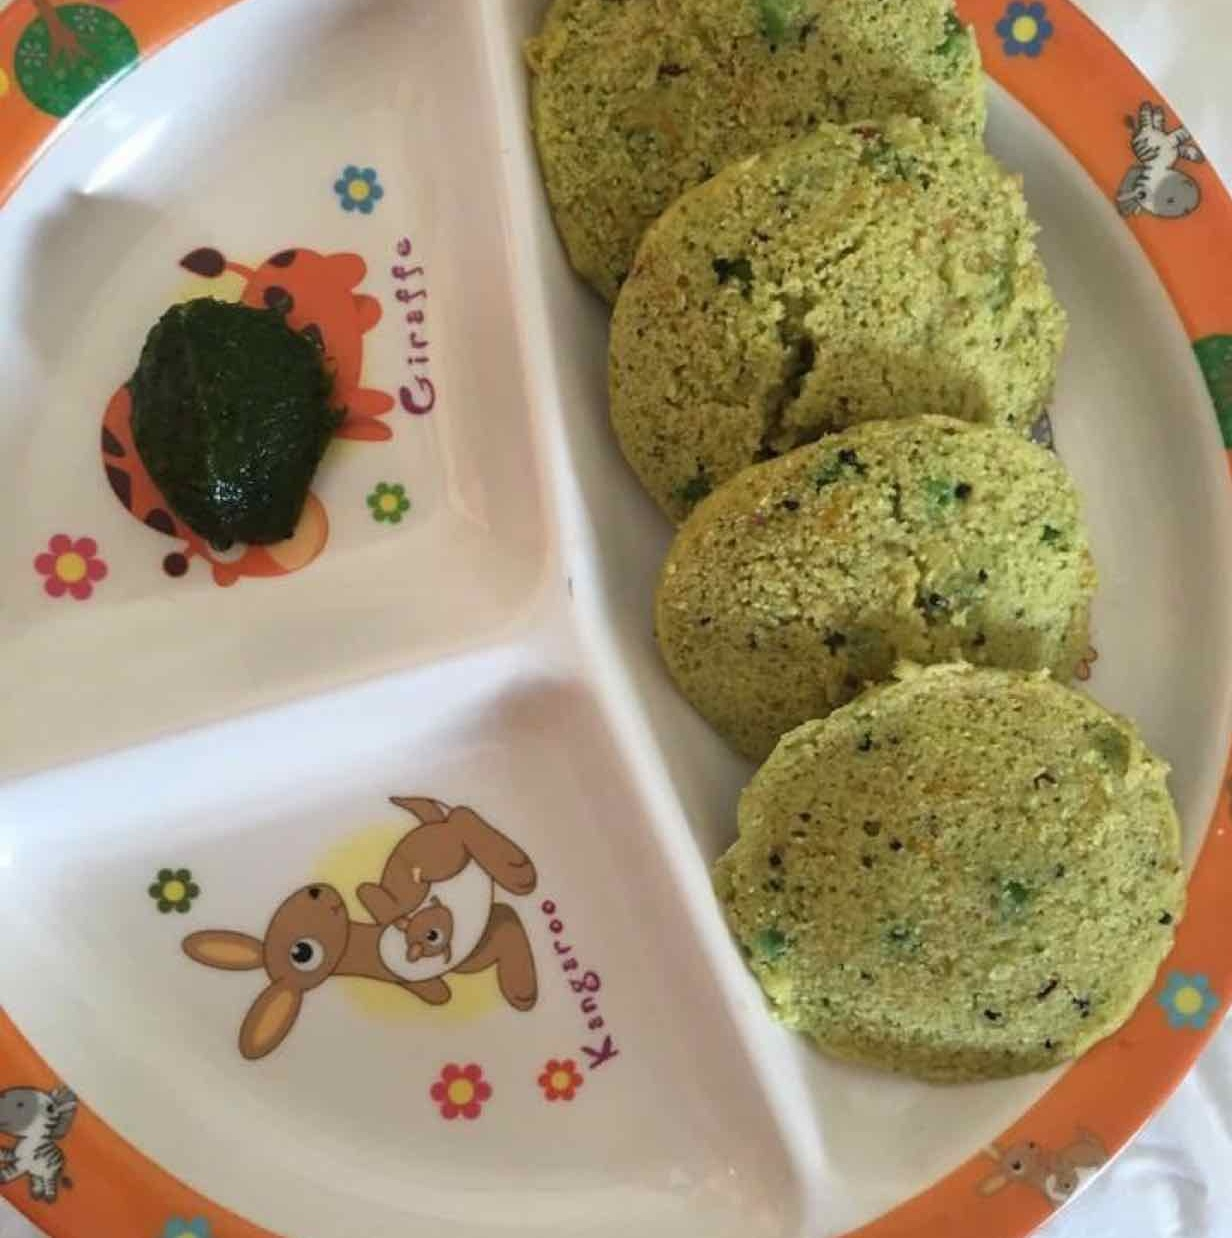 Photo of Instant sooji and Oats idli by Neha Nikul Raval at BetterButter